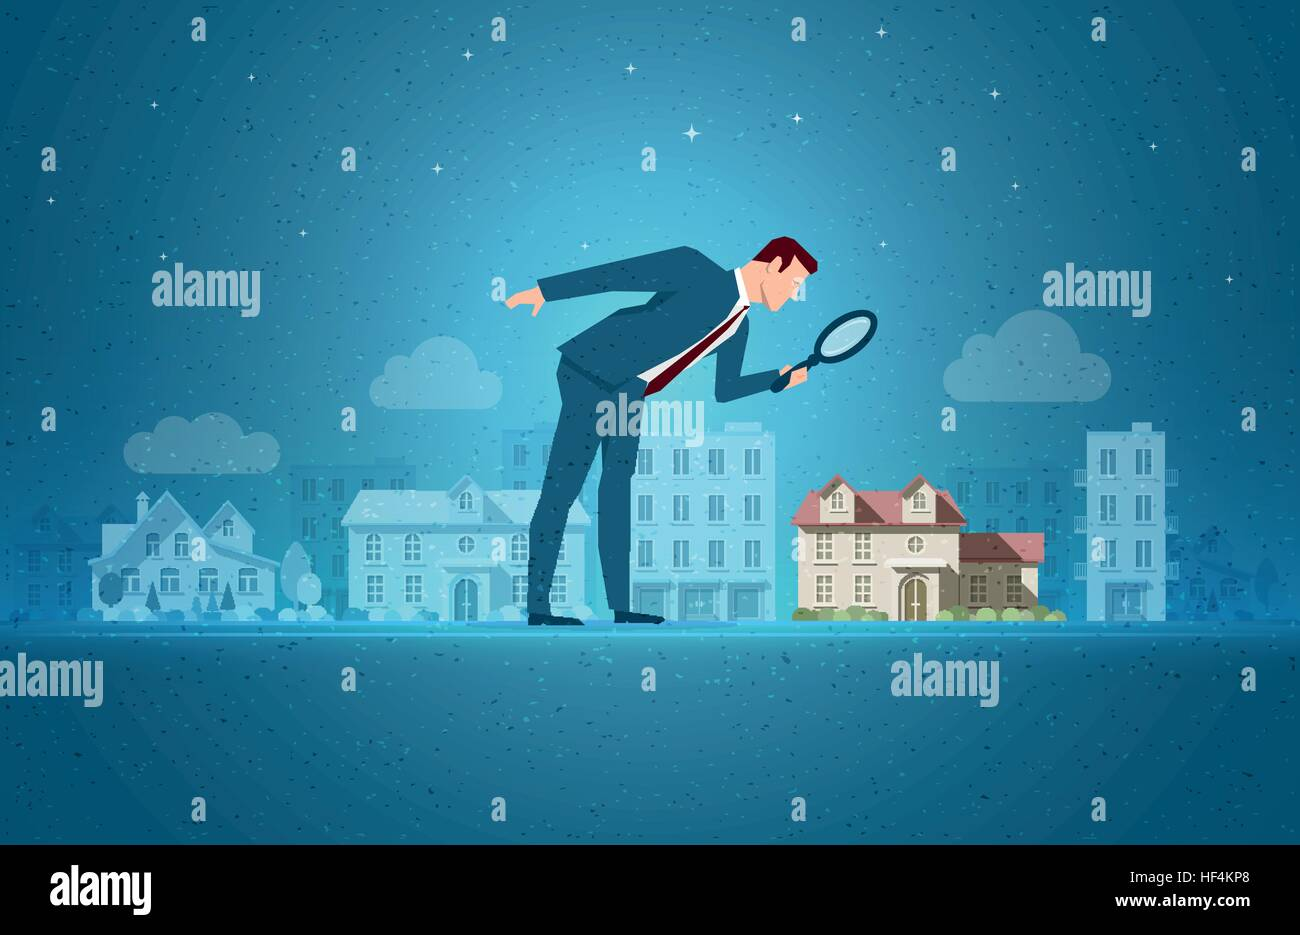 Business concept vector illustration. Investing, real estate, investment opportunity concept. Elements are layered - Stock Vector